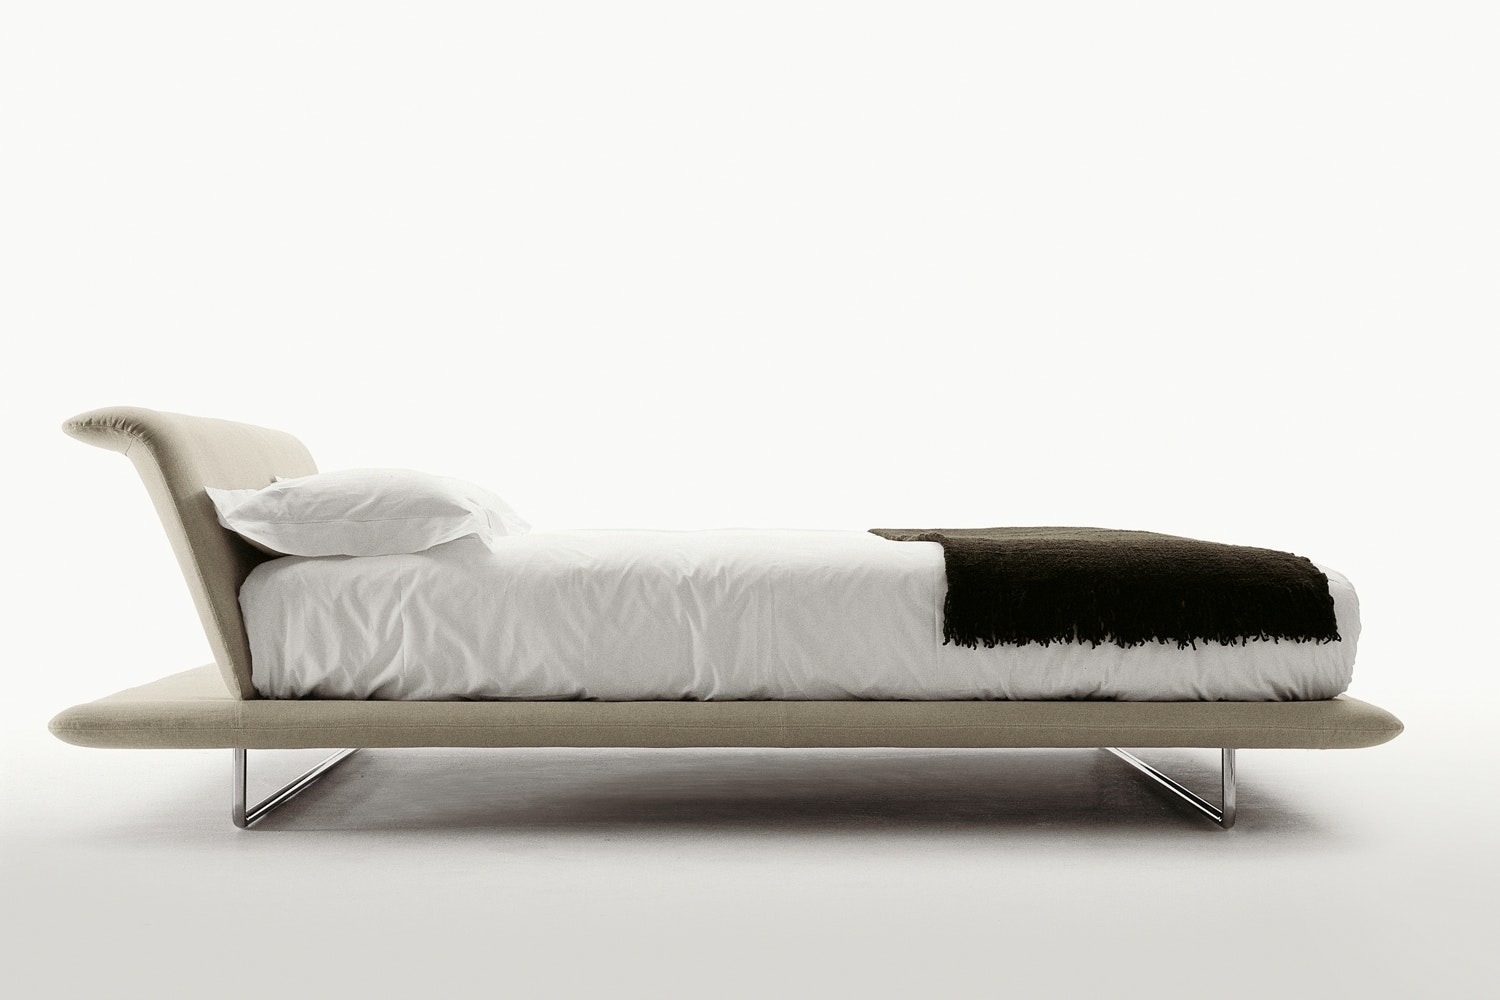 Siena Bed in Fabric by Naoto Fukasawa for B&B Italia